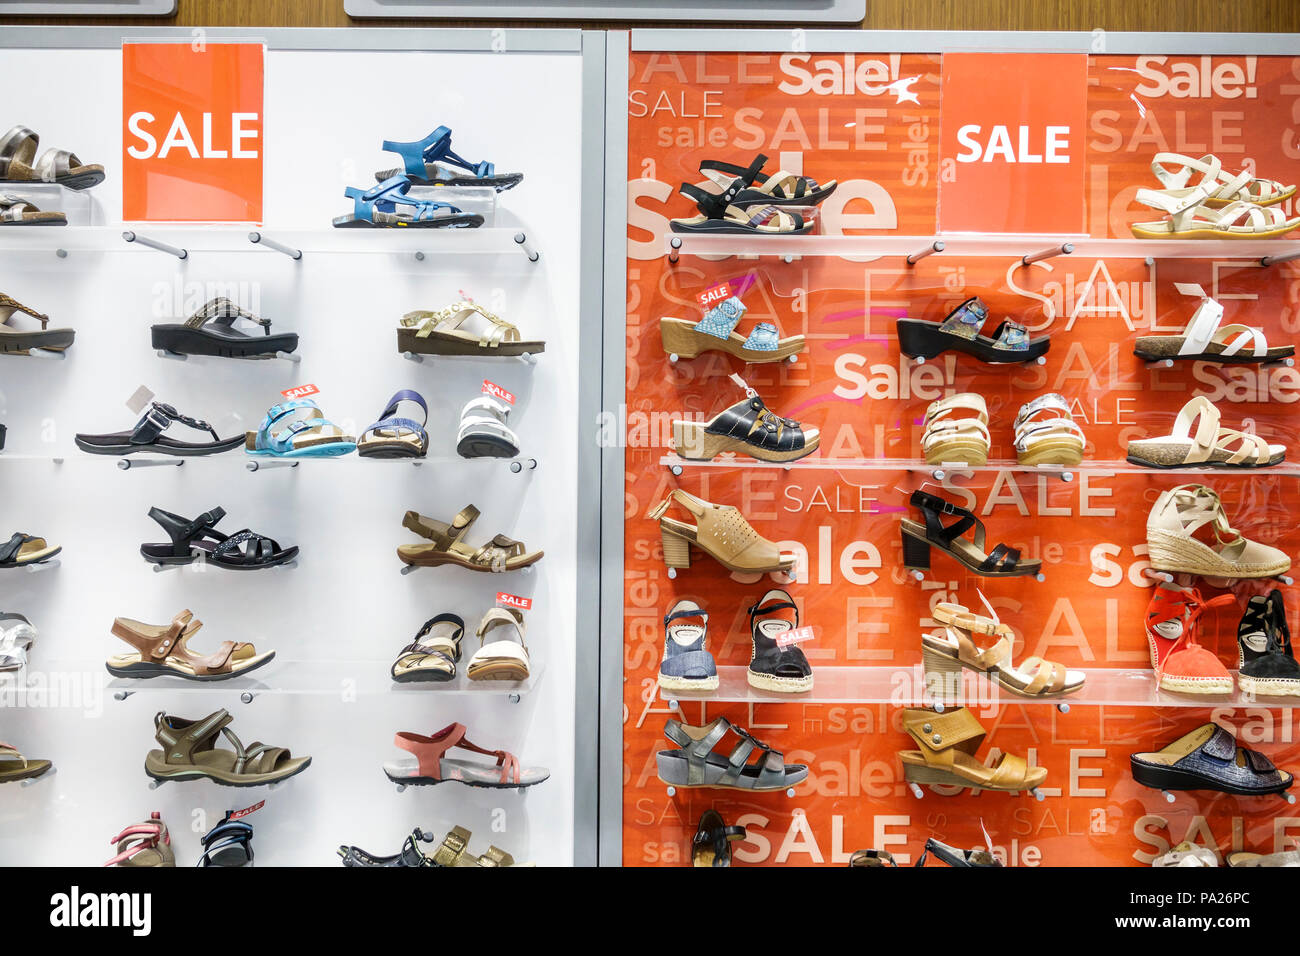 Orlando Florida The Mall at Millenia shopping The Walking Store retail chain comfort shoes display women's sandals sale interior - Stock Image